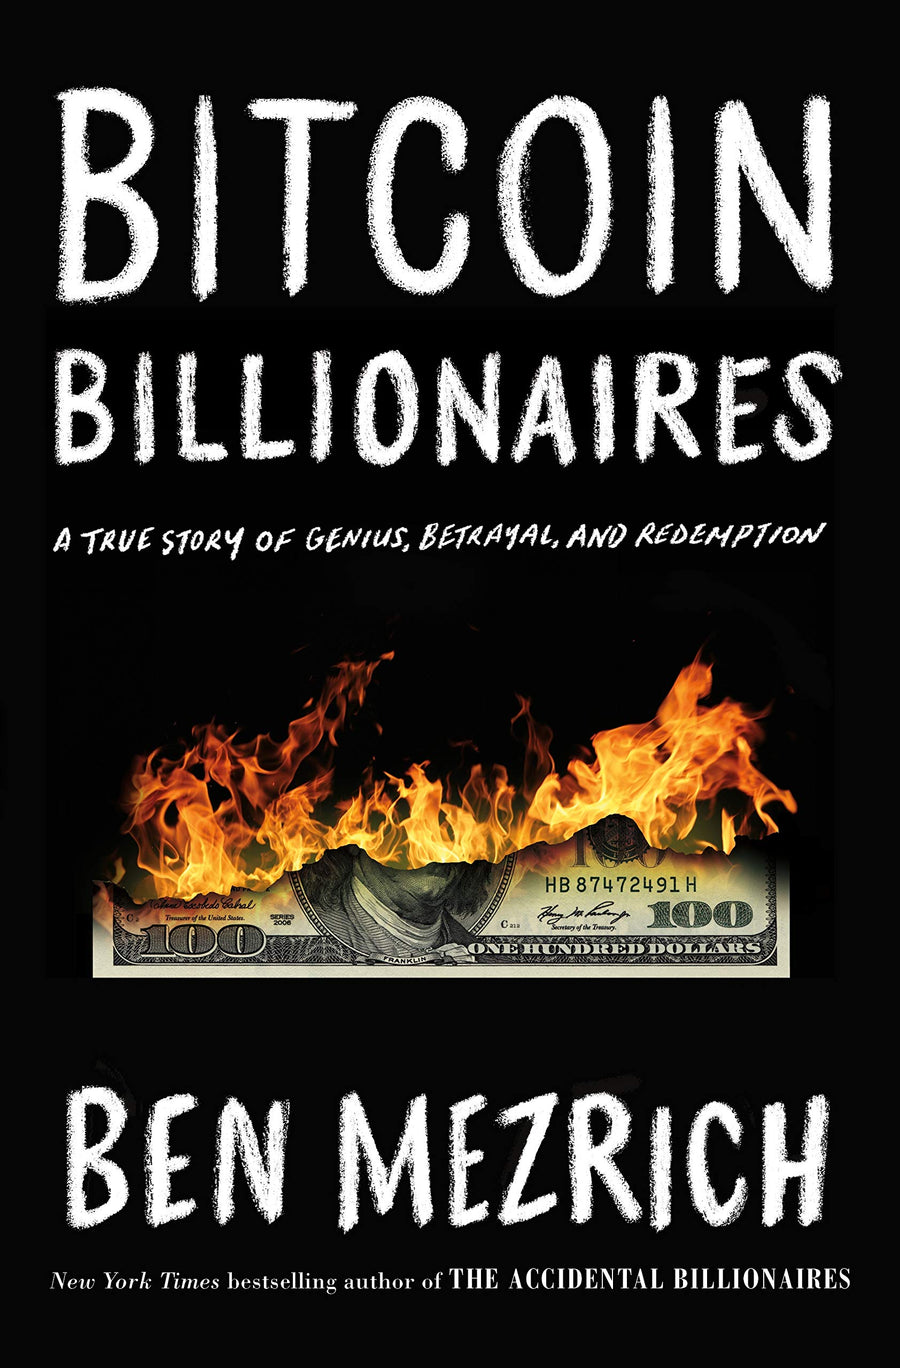 Bitcoin Billionaires: A True Story of Genius, Betrayal and Redemption by Ben Mezrich